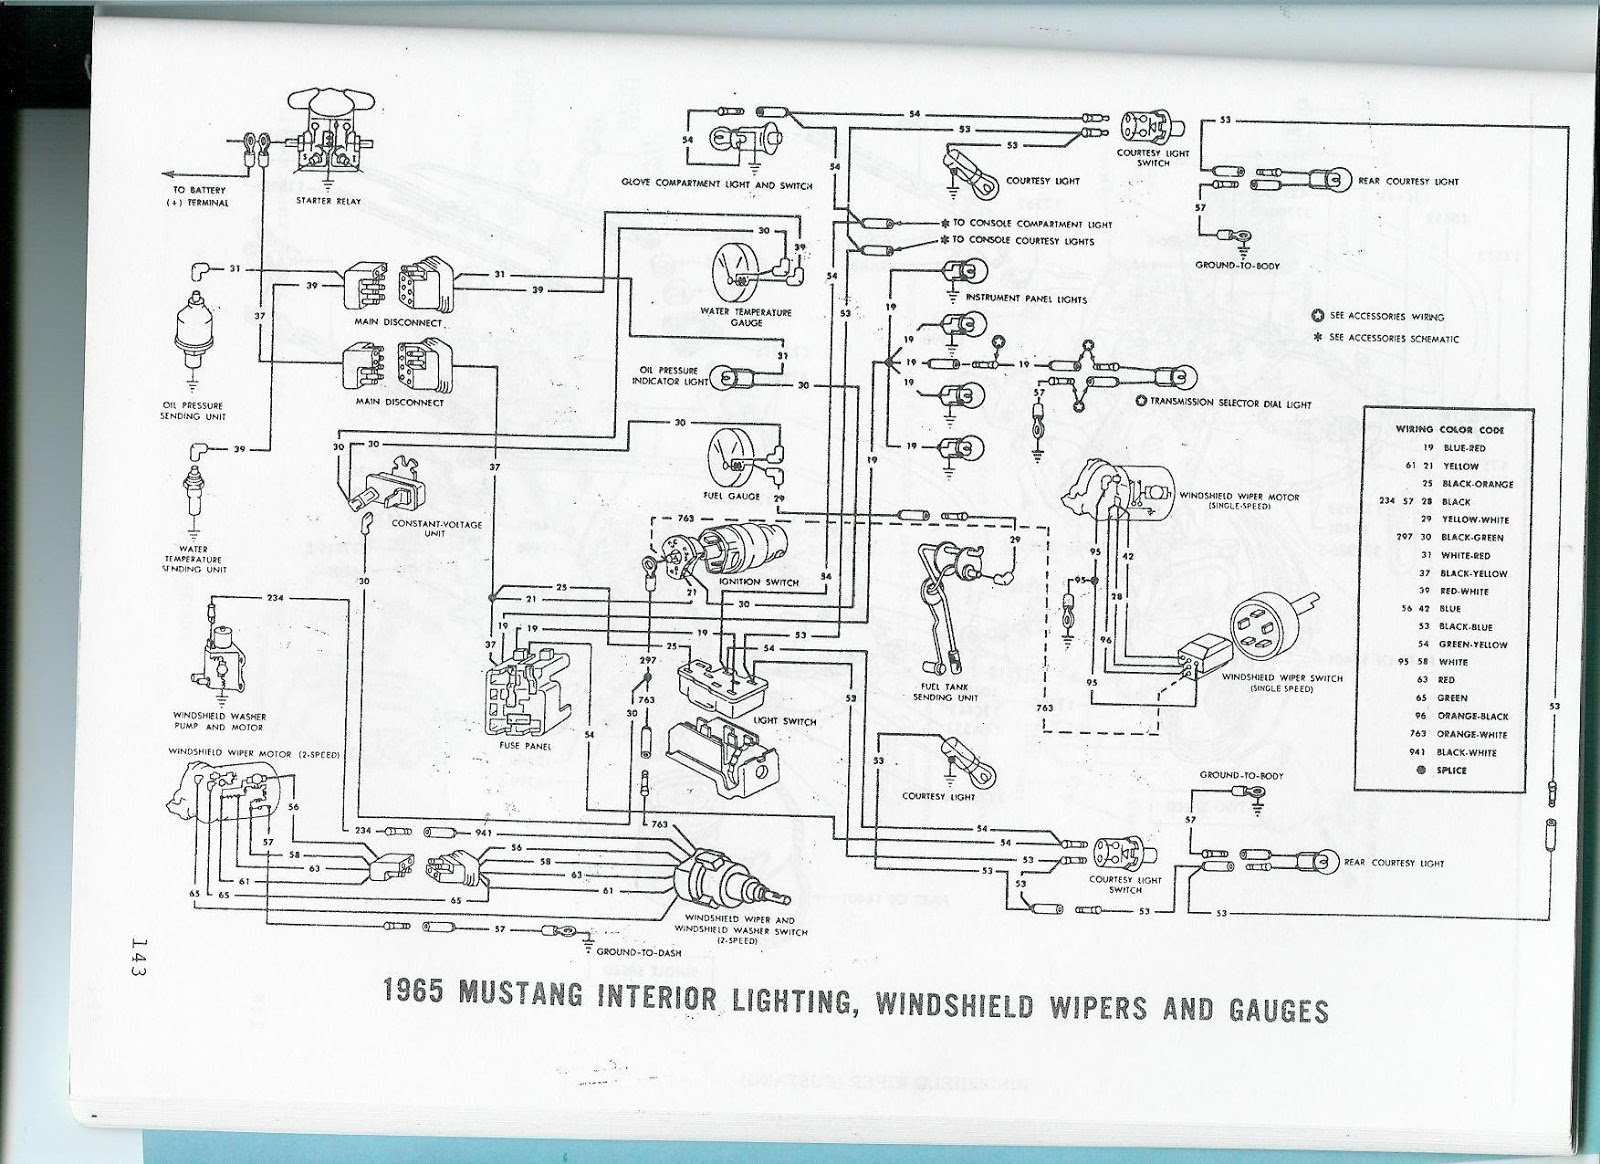 57 chevy bel air headlight wiring diagram  | 350 x 220